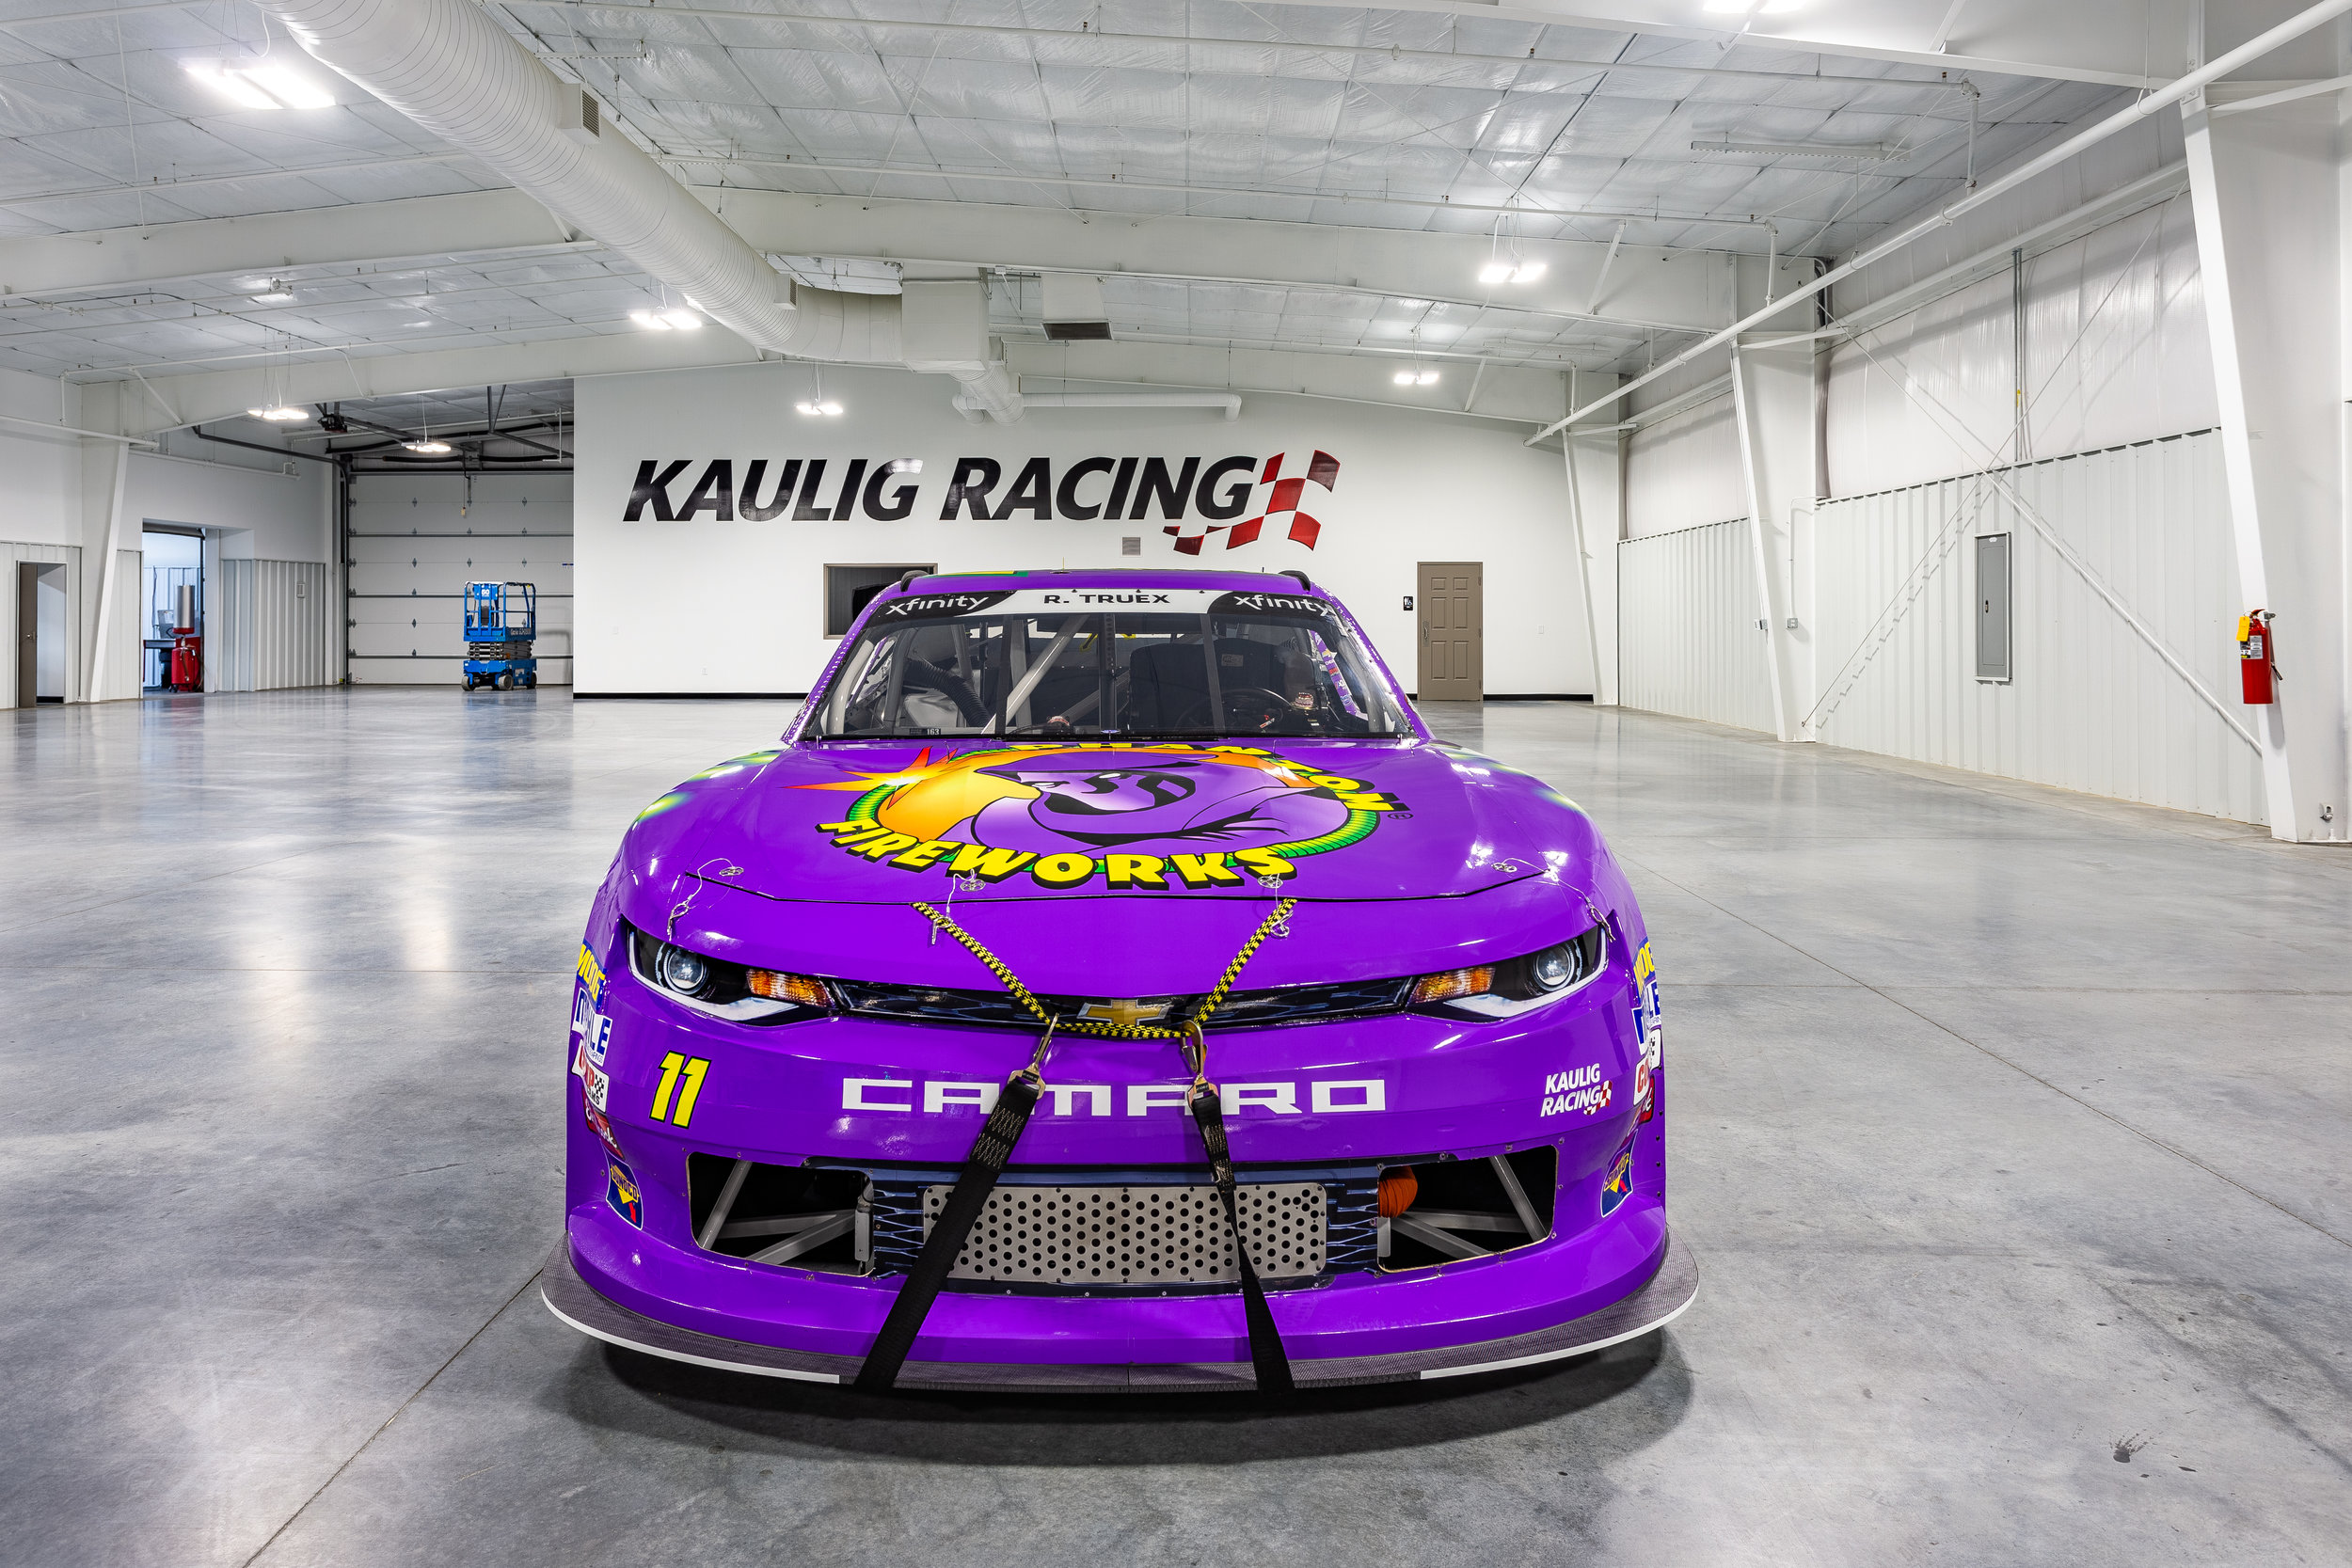 commercial-photography-real-estate-photographer-greensboro-high-point-kaulig-racing.jpg